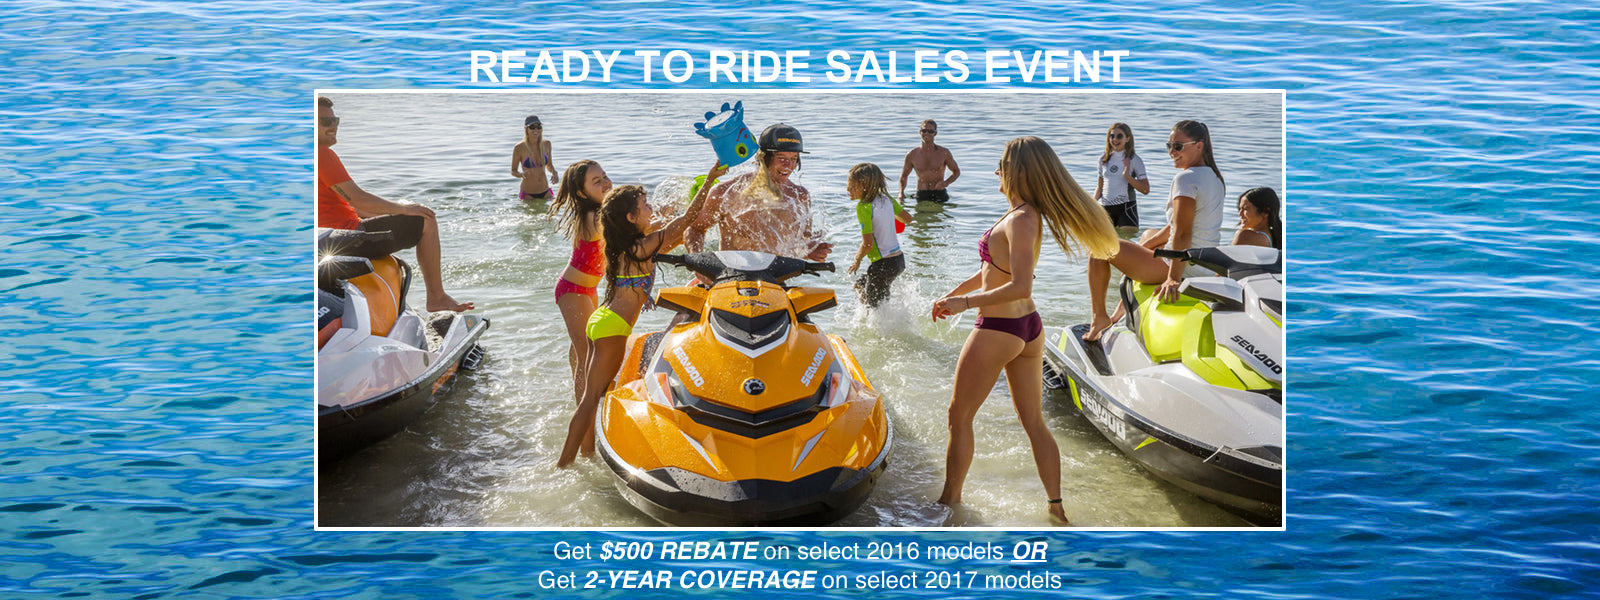 Sea-Doo Ready to Ride Sales Event - Central Florida Powersports - SeaDoo Dealer Kissimmee